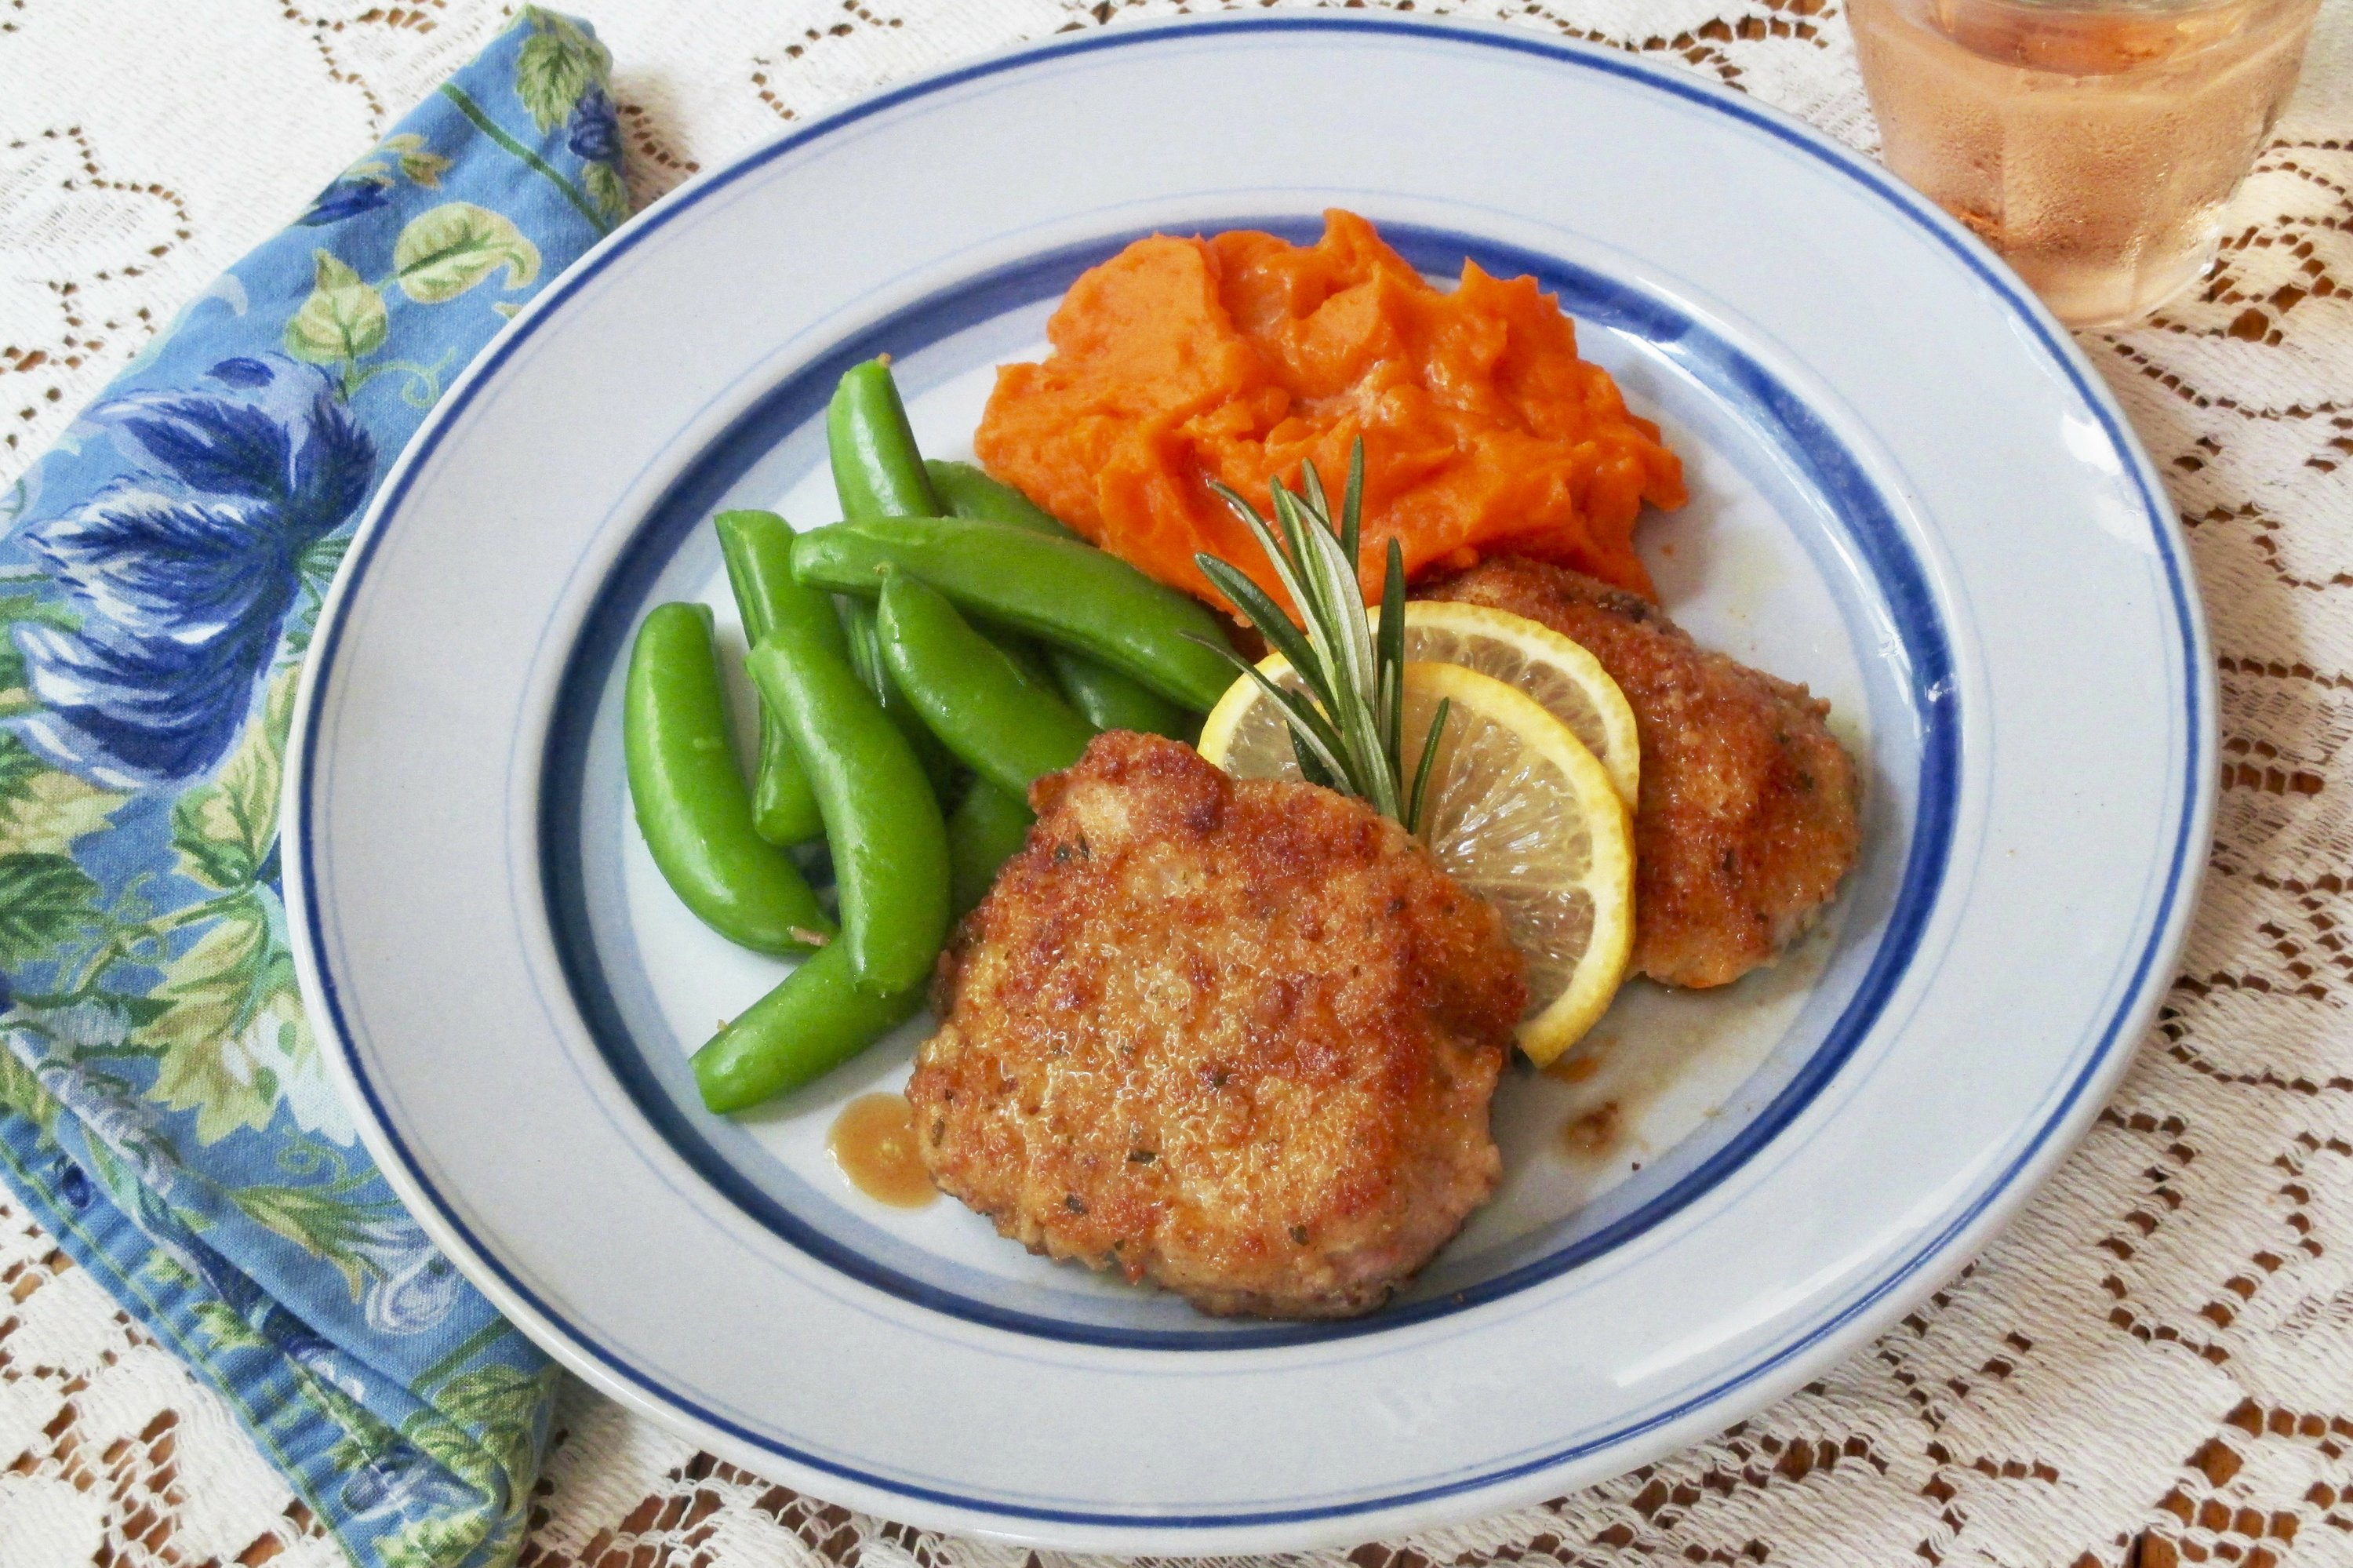 Cheesy Pork Steaks are quick to make _ and delicious to eat